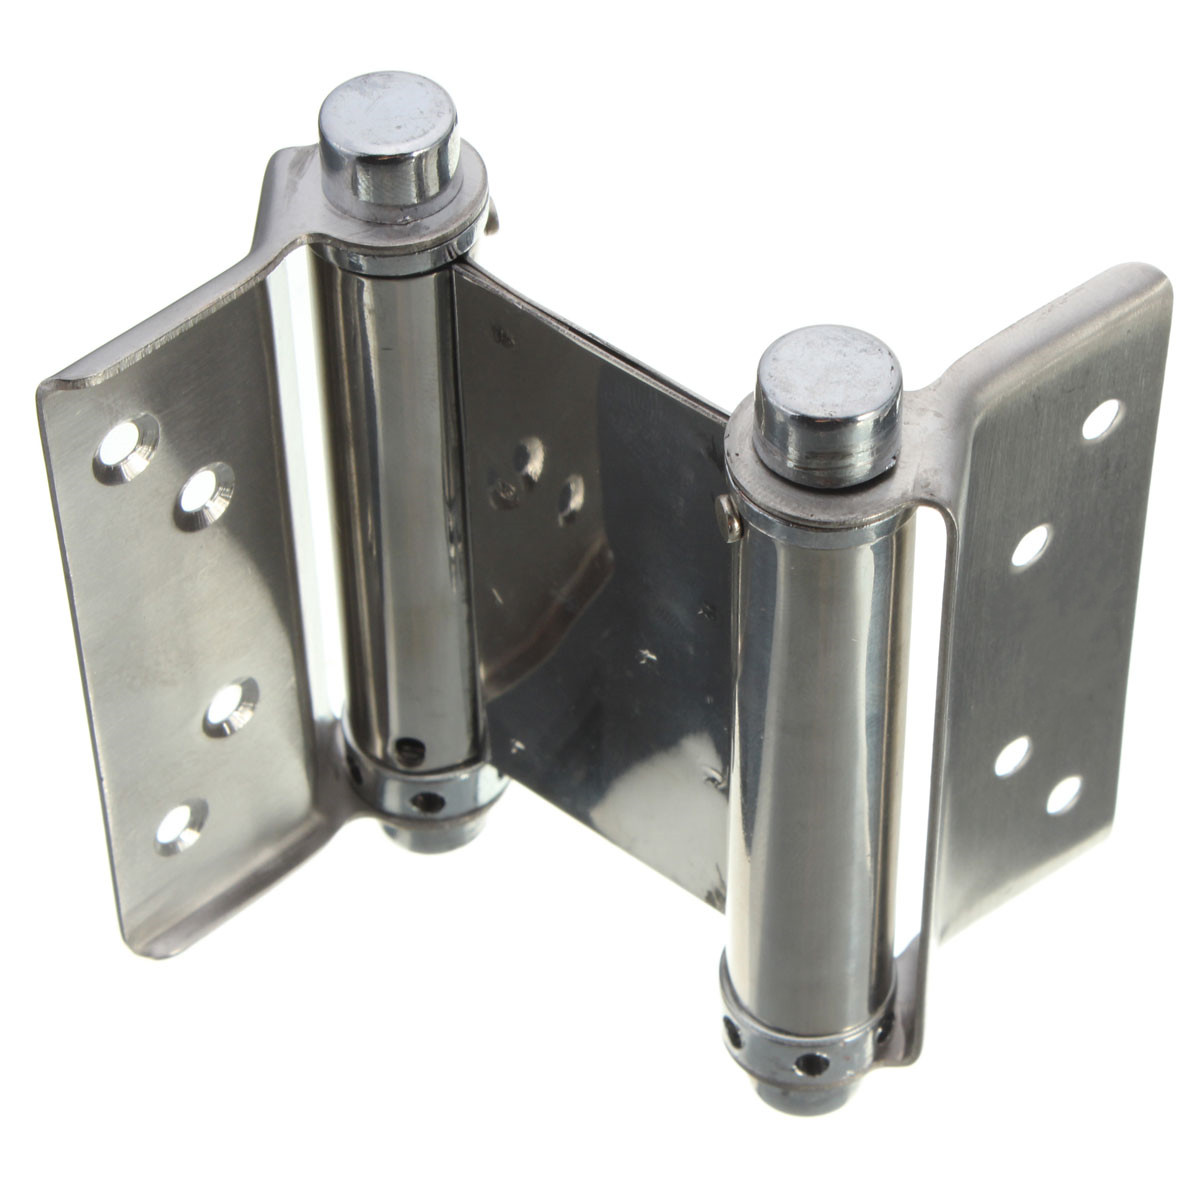 Swing Hinges 2pcs 3 Inch Double Action Spring Hinge Saloon Cafe Door Swing